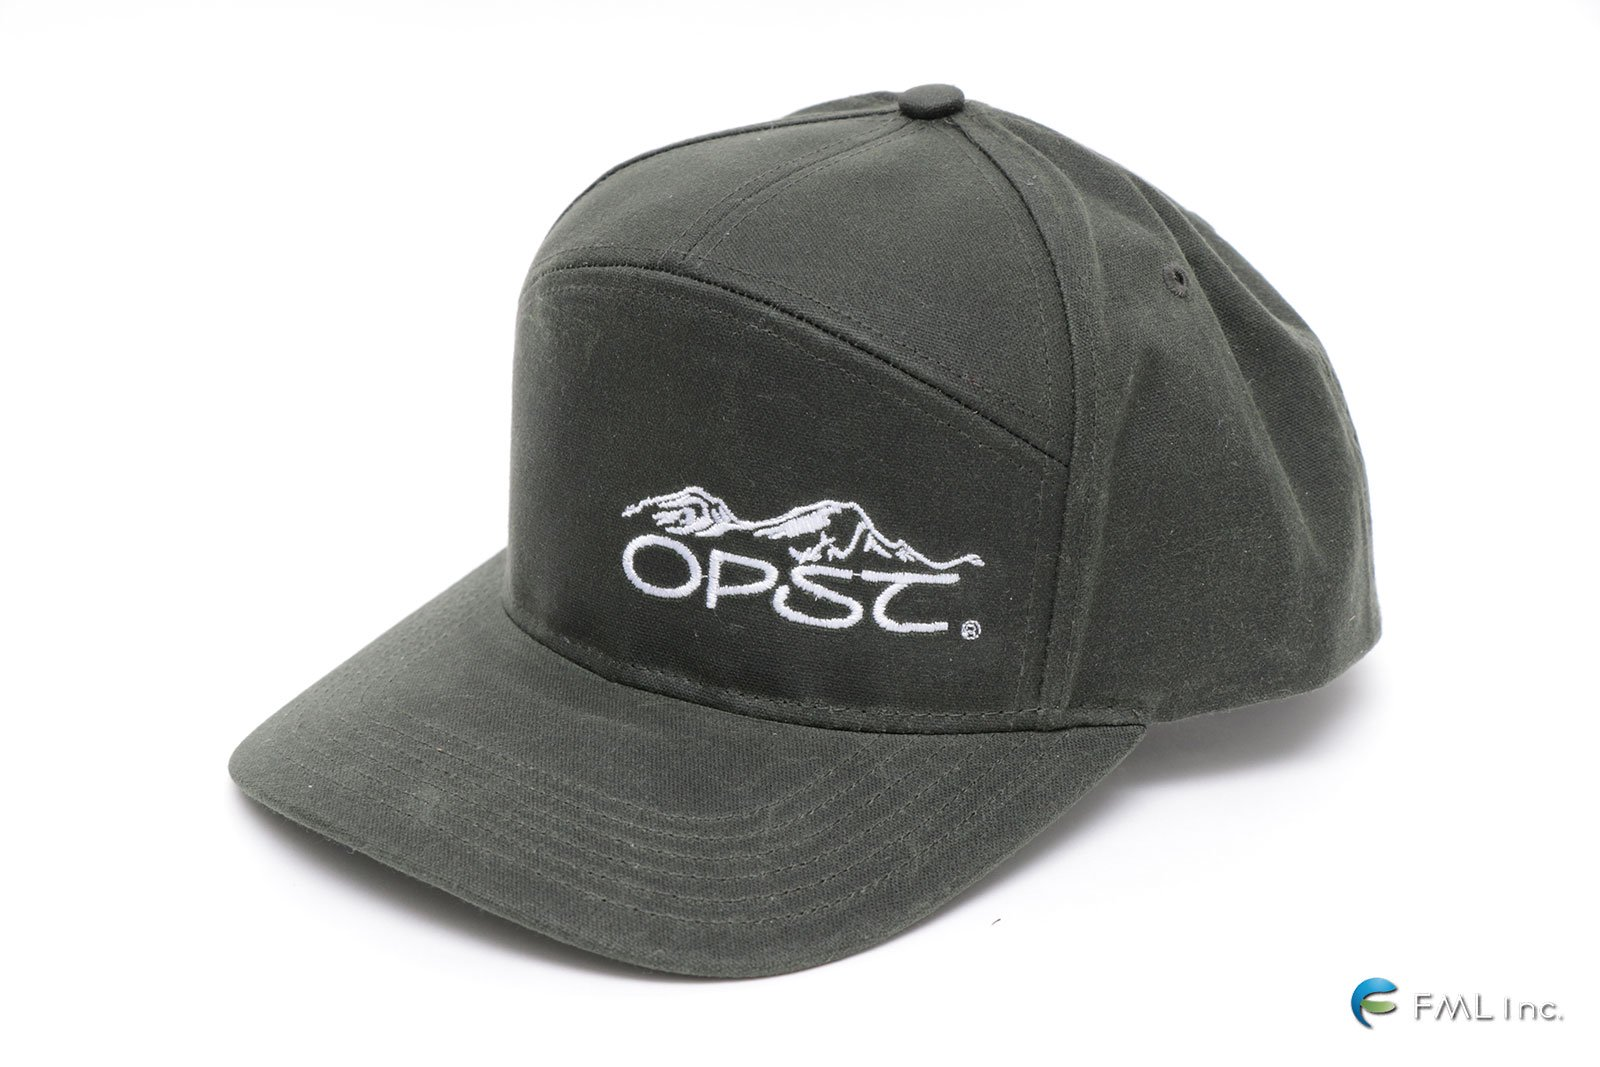 <img class='new_mark_img1' src='https://img.shop-pro.jp/img/new/icons5.gif' style='border:none;display:inline;margin:0px;padding:0px;width:auto;' />OPST 6 Panel Hat-Water Repel- Dark Olive(ダークオリーブ)